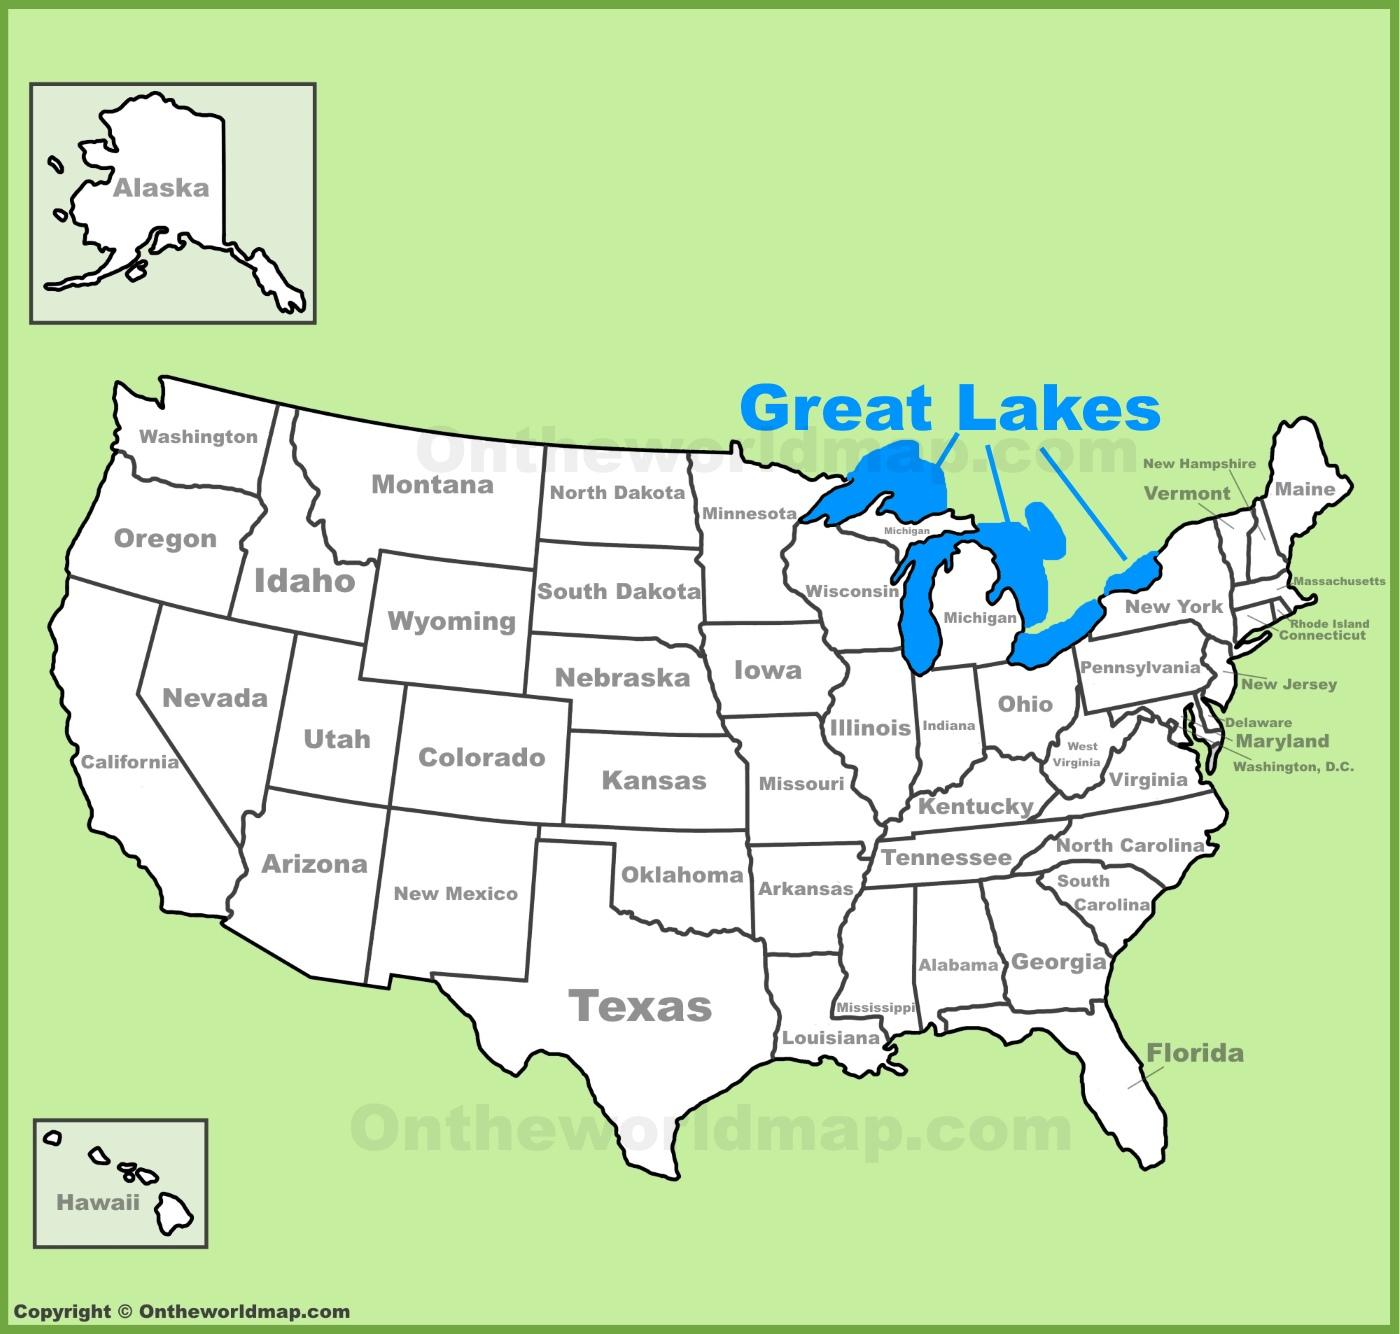 great lakes maps  maps of great lakes - full size · great lakes location map